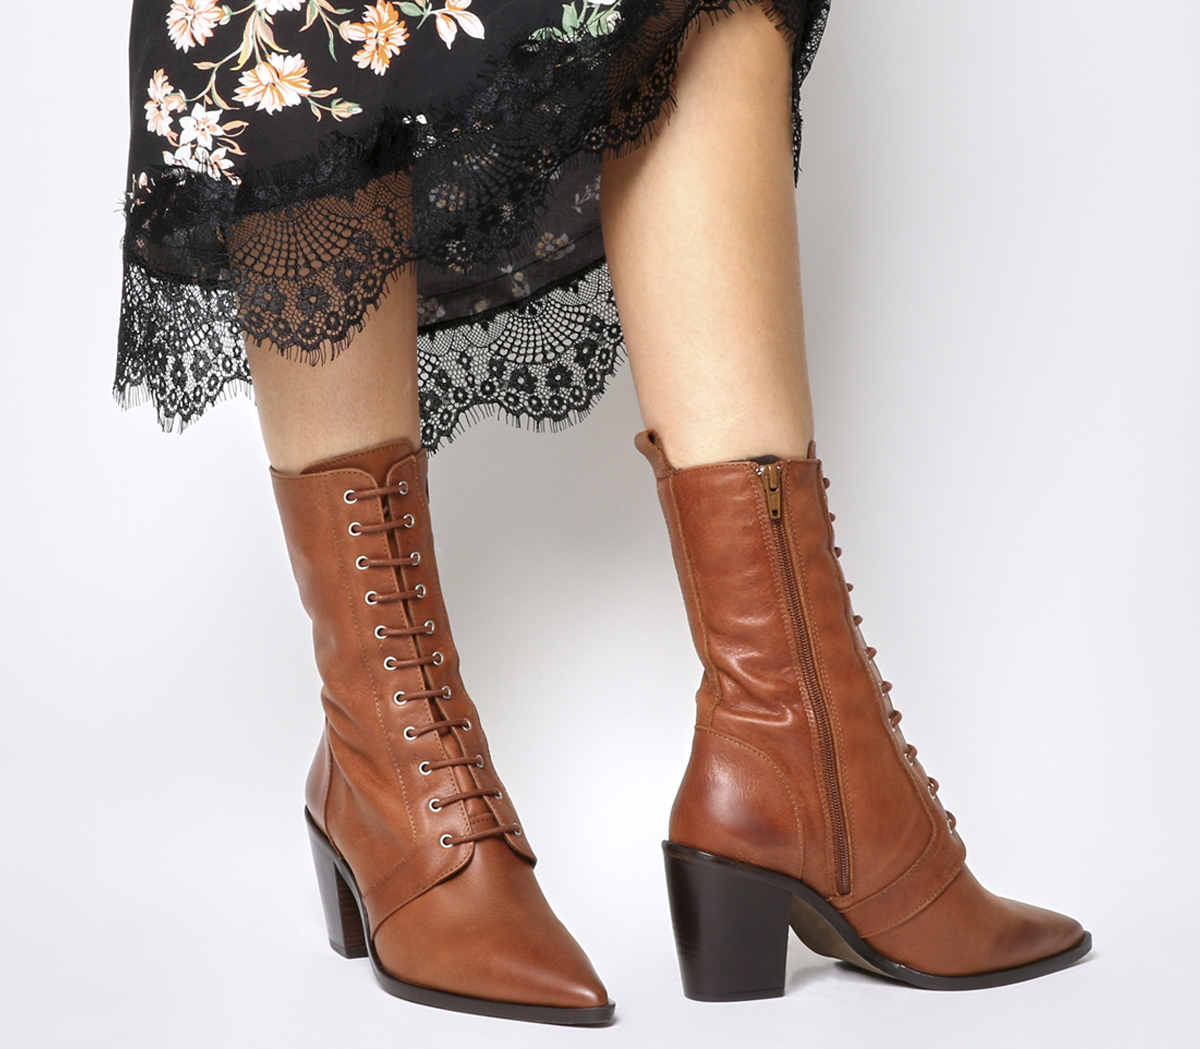 Womens Office Boots Komissioner Lace Up Calf Boots Office TAN LEATHER Boots c41885